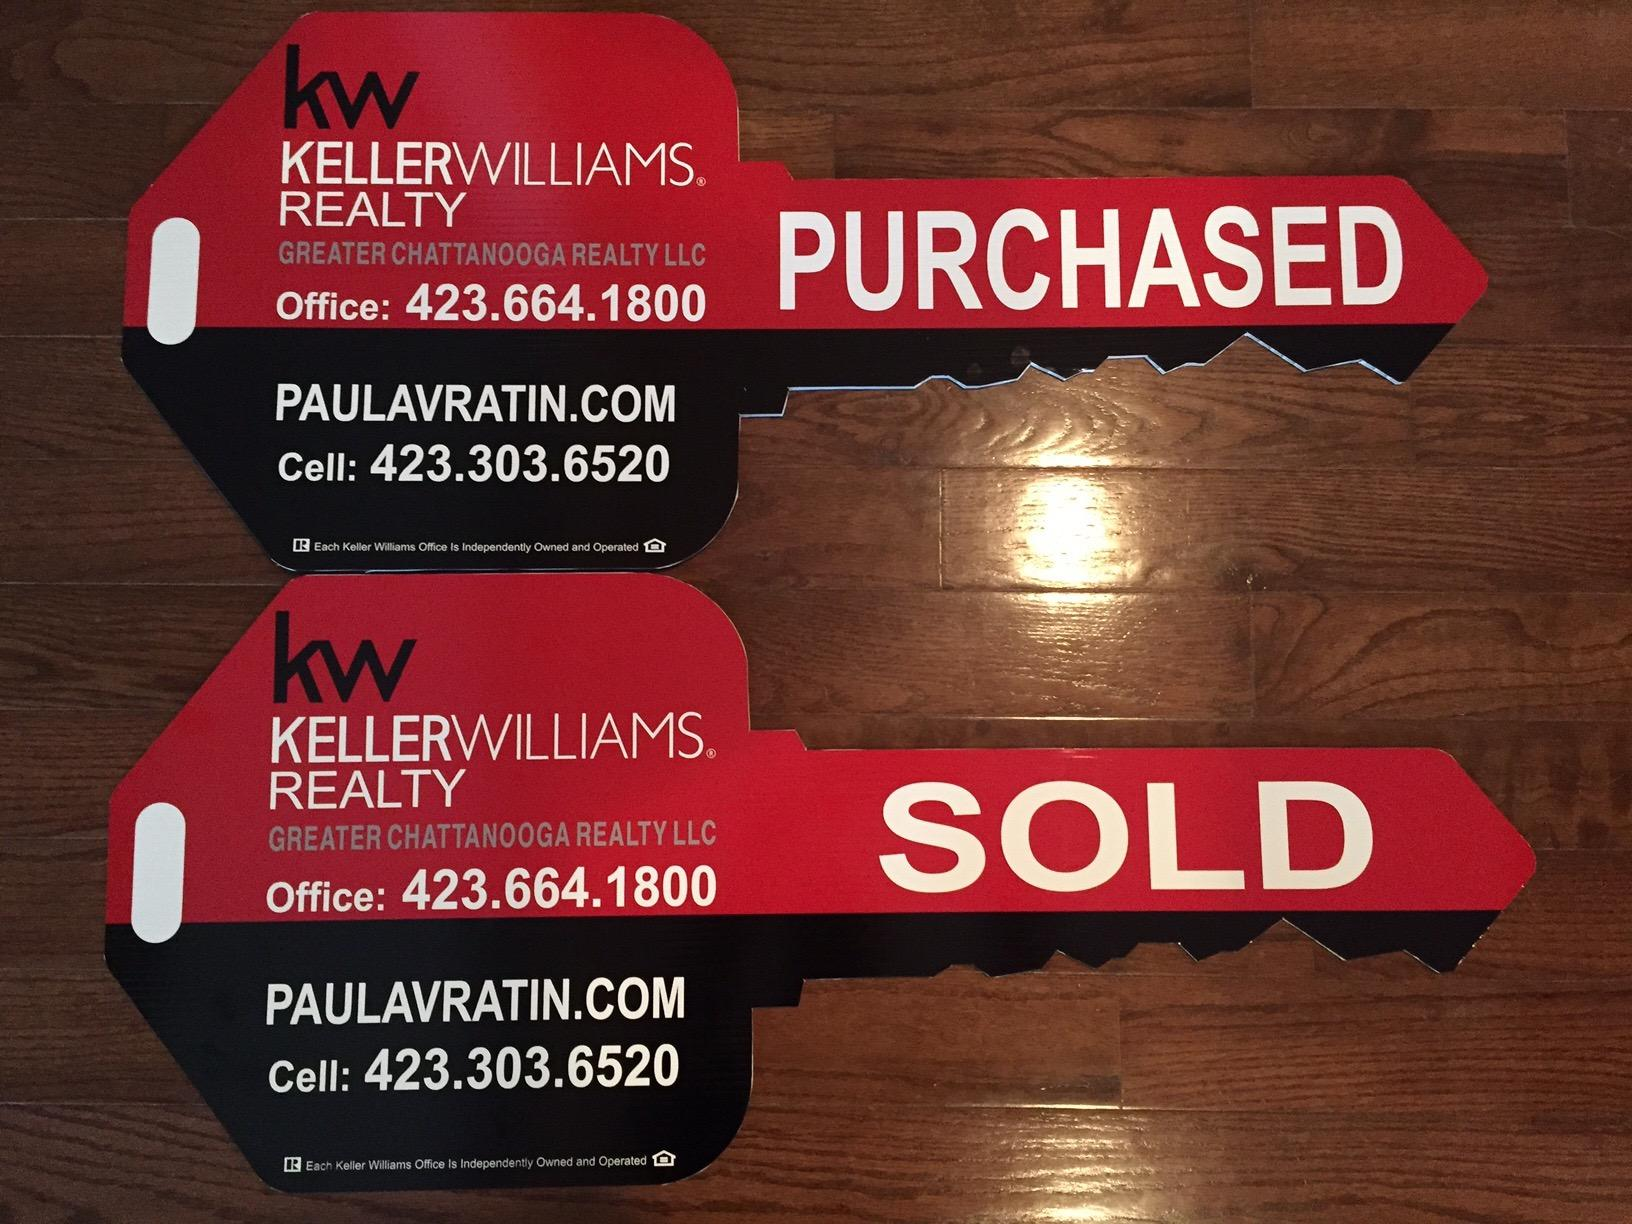 Paul Avratin Agent Keller Williams Realty image 1